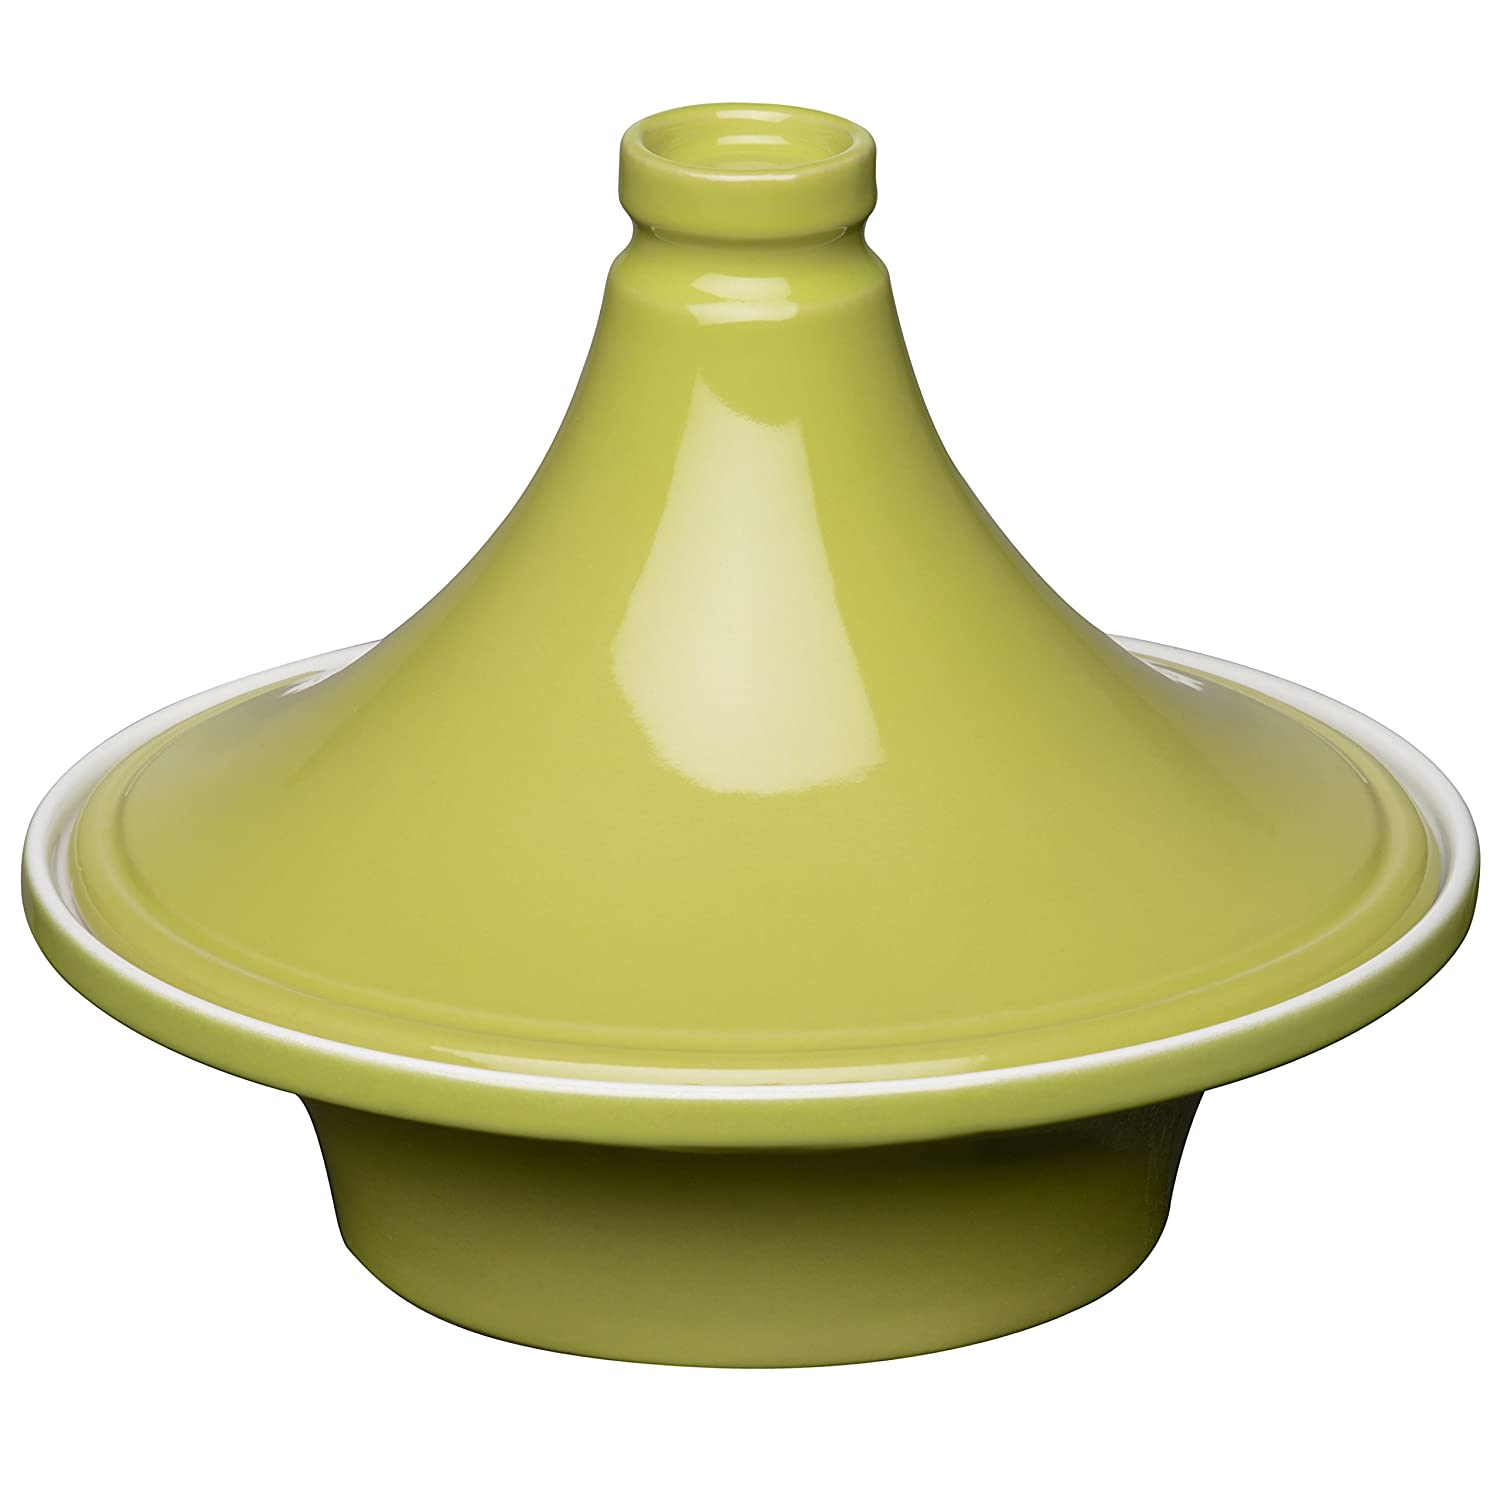 Premier Housewares OvenLove Tagine, Large, Lime Green 0104435